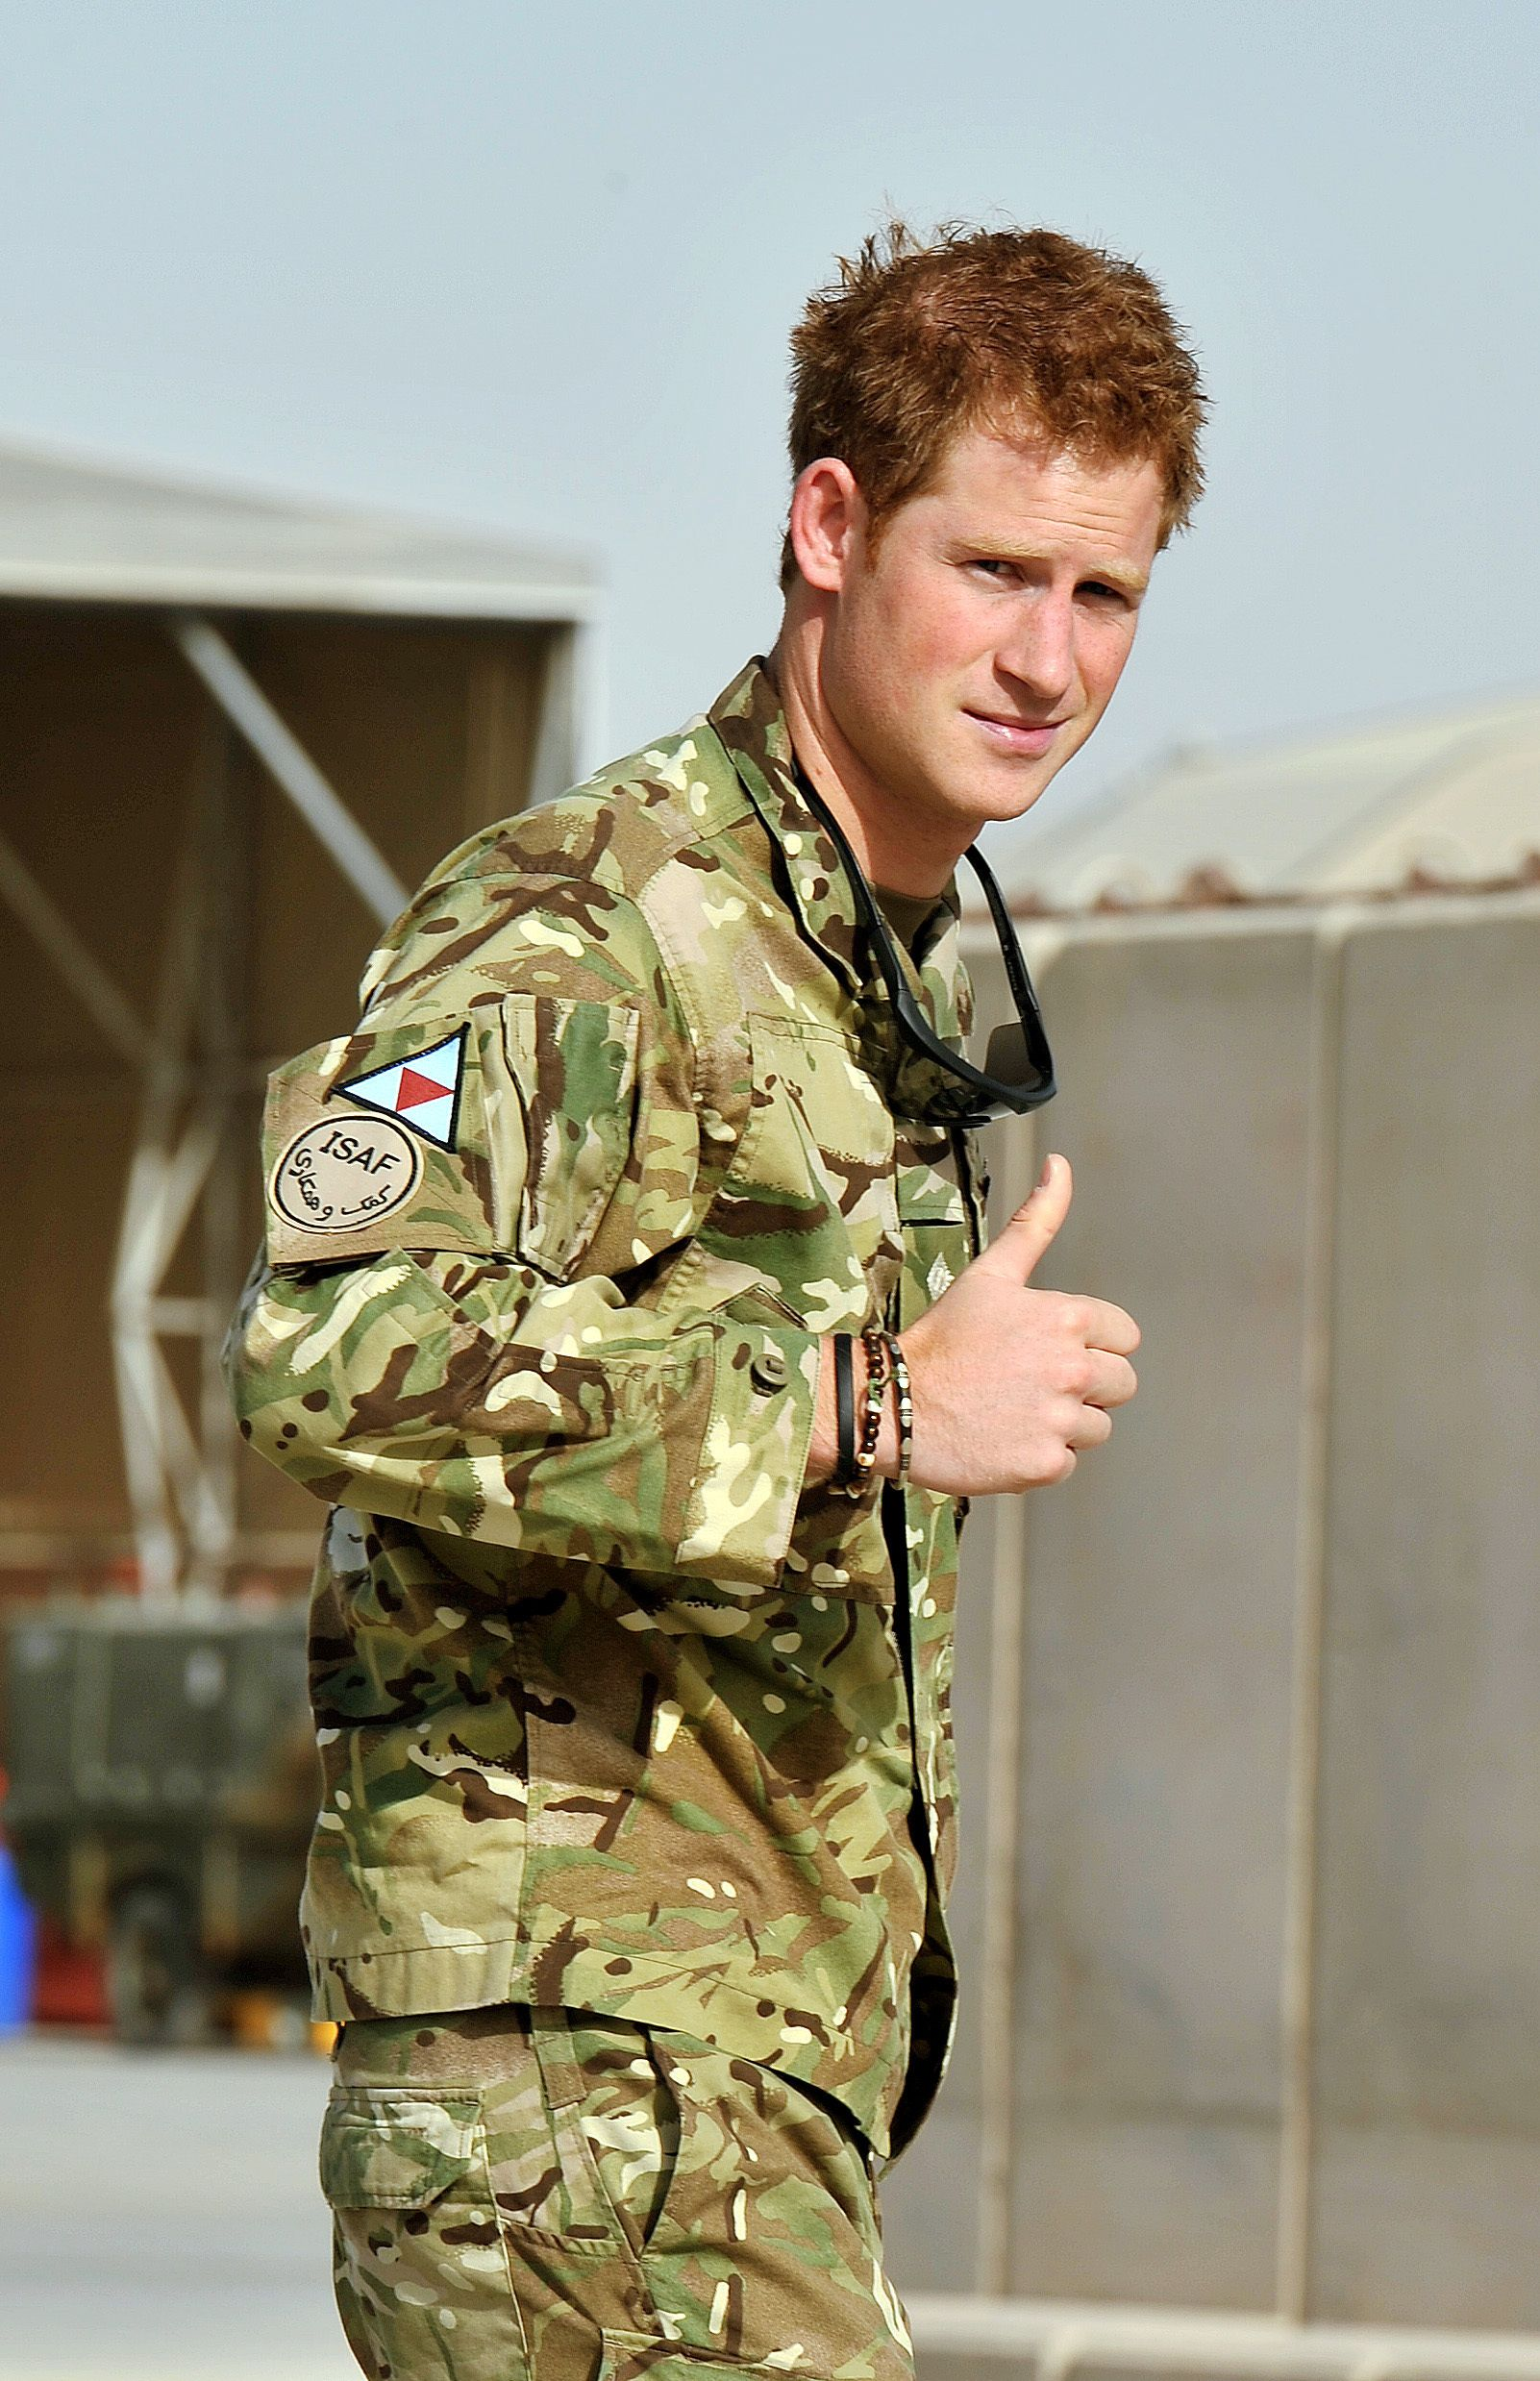 prince harry to get apology from soldier prince harry to get apology from soldier